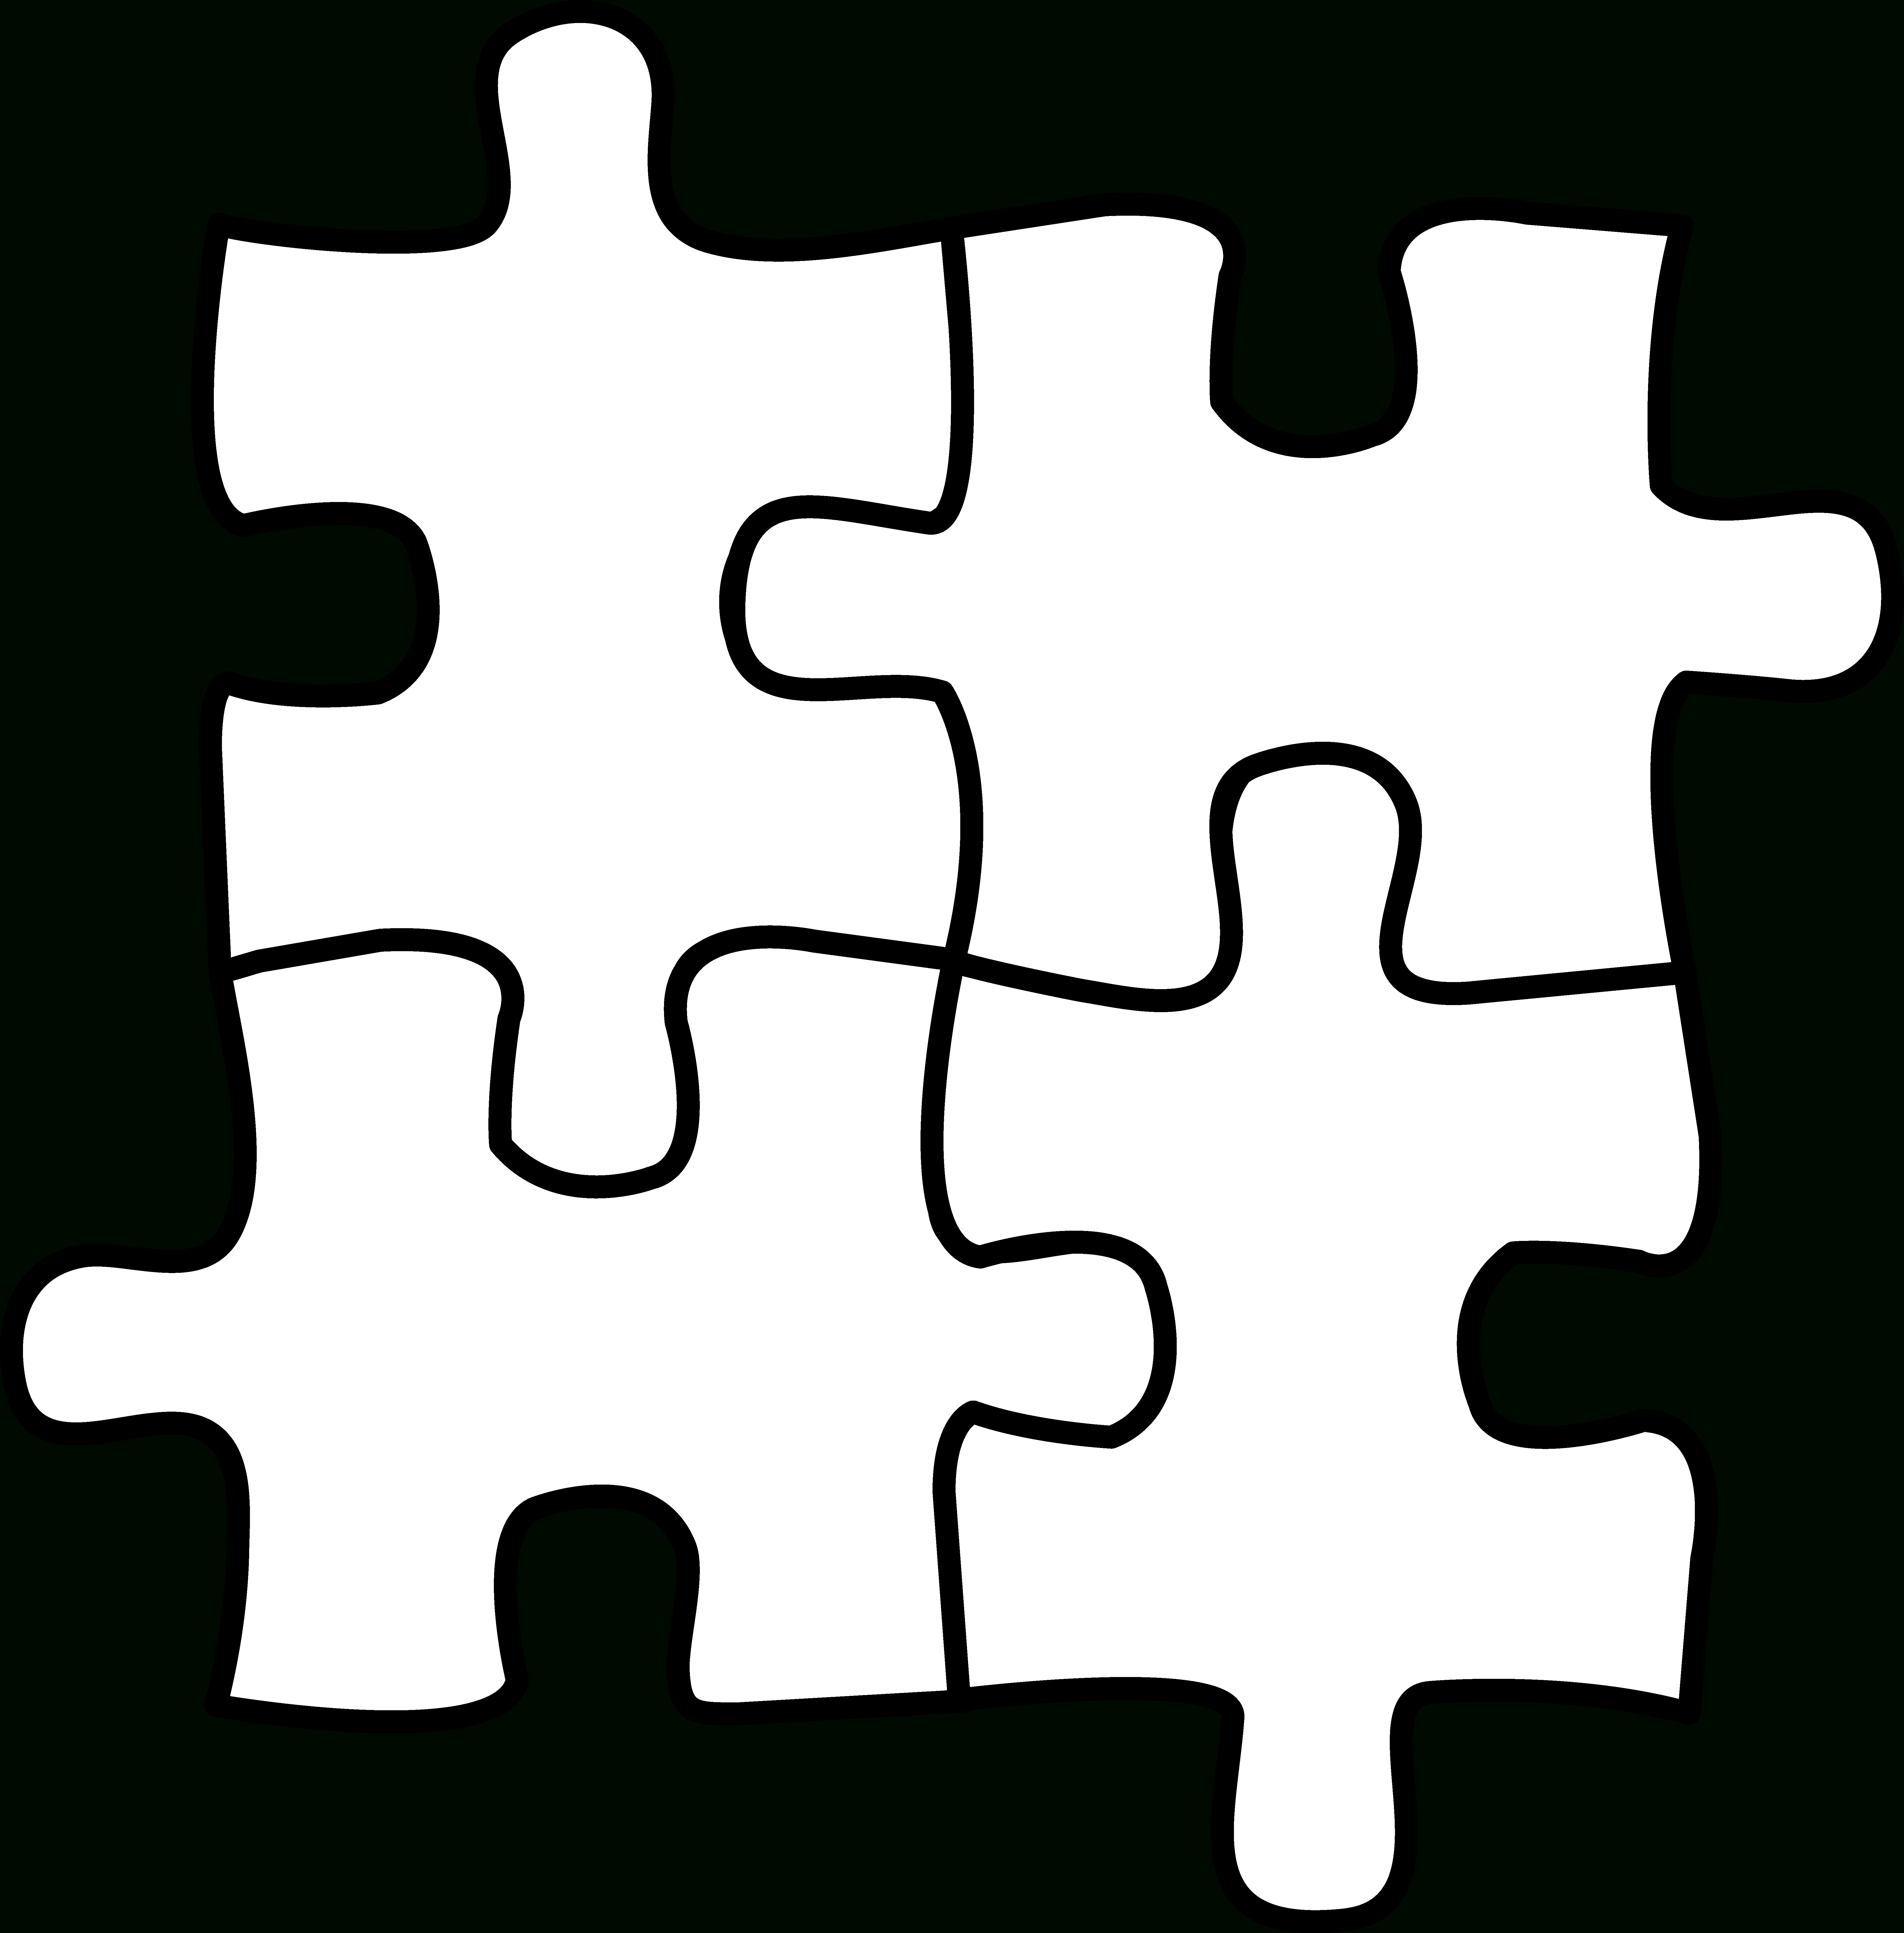 10 Pics Of Puzzle Piece Coloring Pages Of Letters - Autism Puzzle - Printable Autism Puzzle Piece